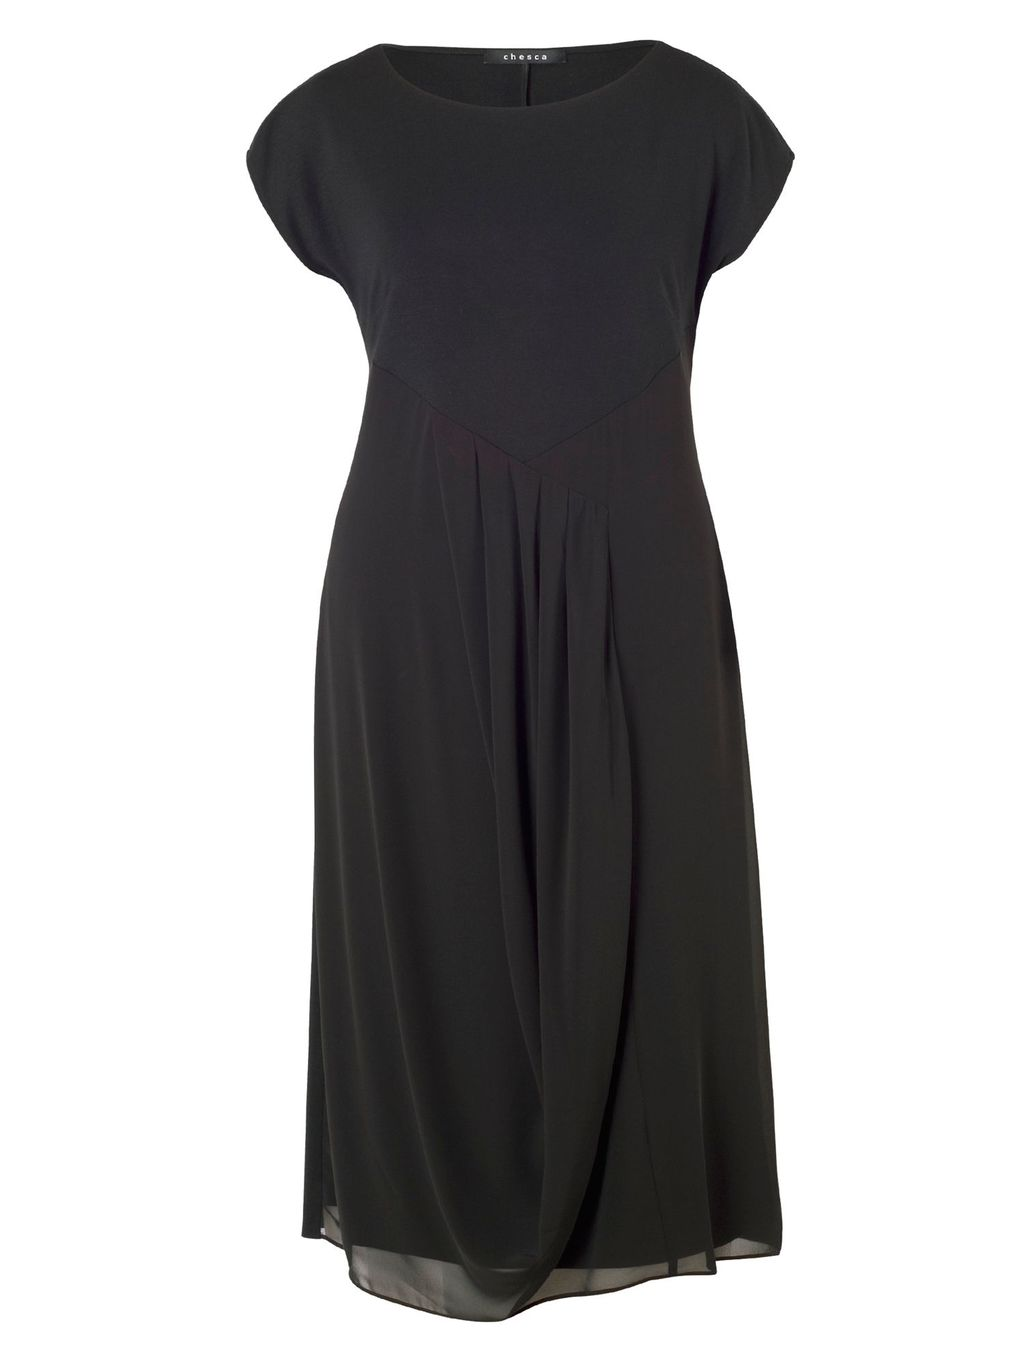 Pleat Trim Jersey/Chiffon Dress, Black - style: shift; length: below the knee; neckline: round neck; pattern: plain; predominant colour: black; occasions: evening; fit: fitted at waist & bust; fibres: viscose/rayon - stretch; sleeve length: short sleeve; sleeve style: standard; texture group: sheer fabrics/chiffon/organza etc.; pattern type: fabric; season: a/w 2015